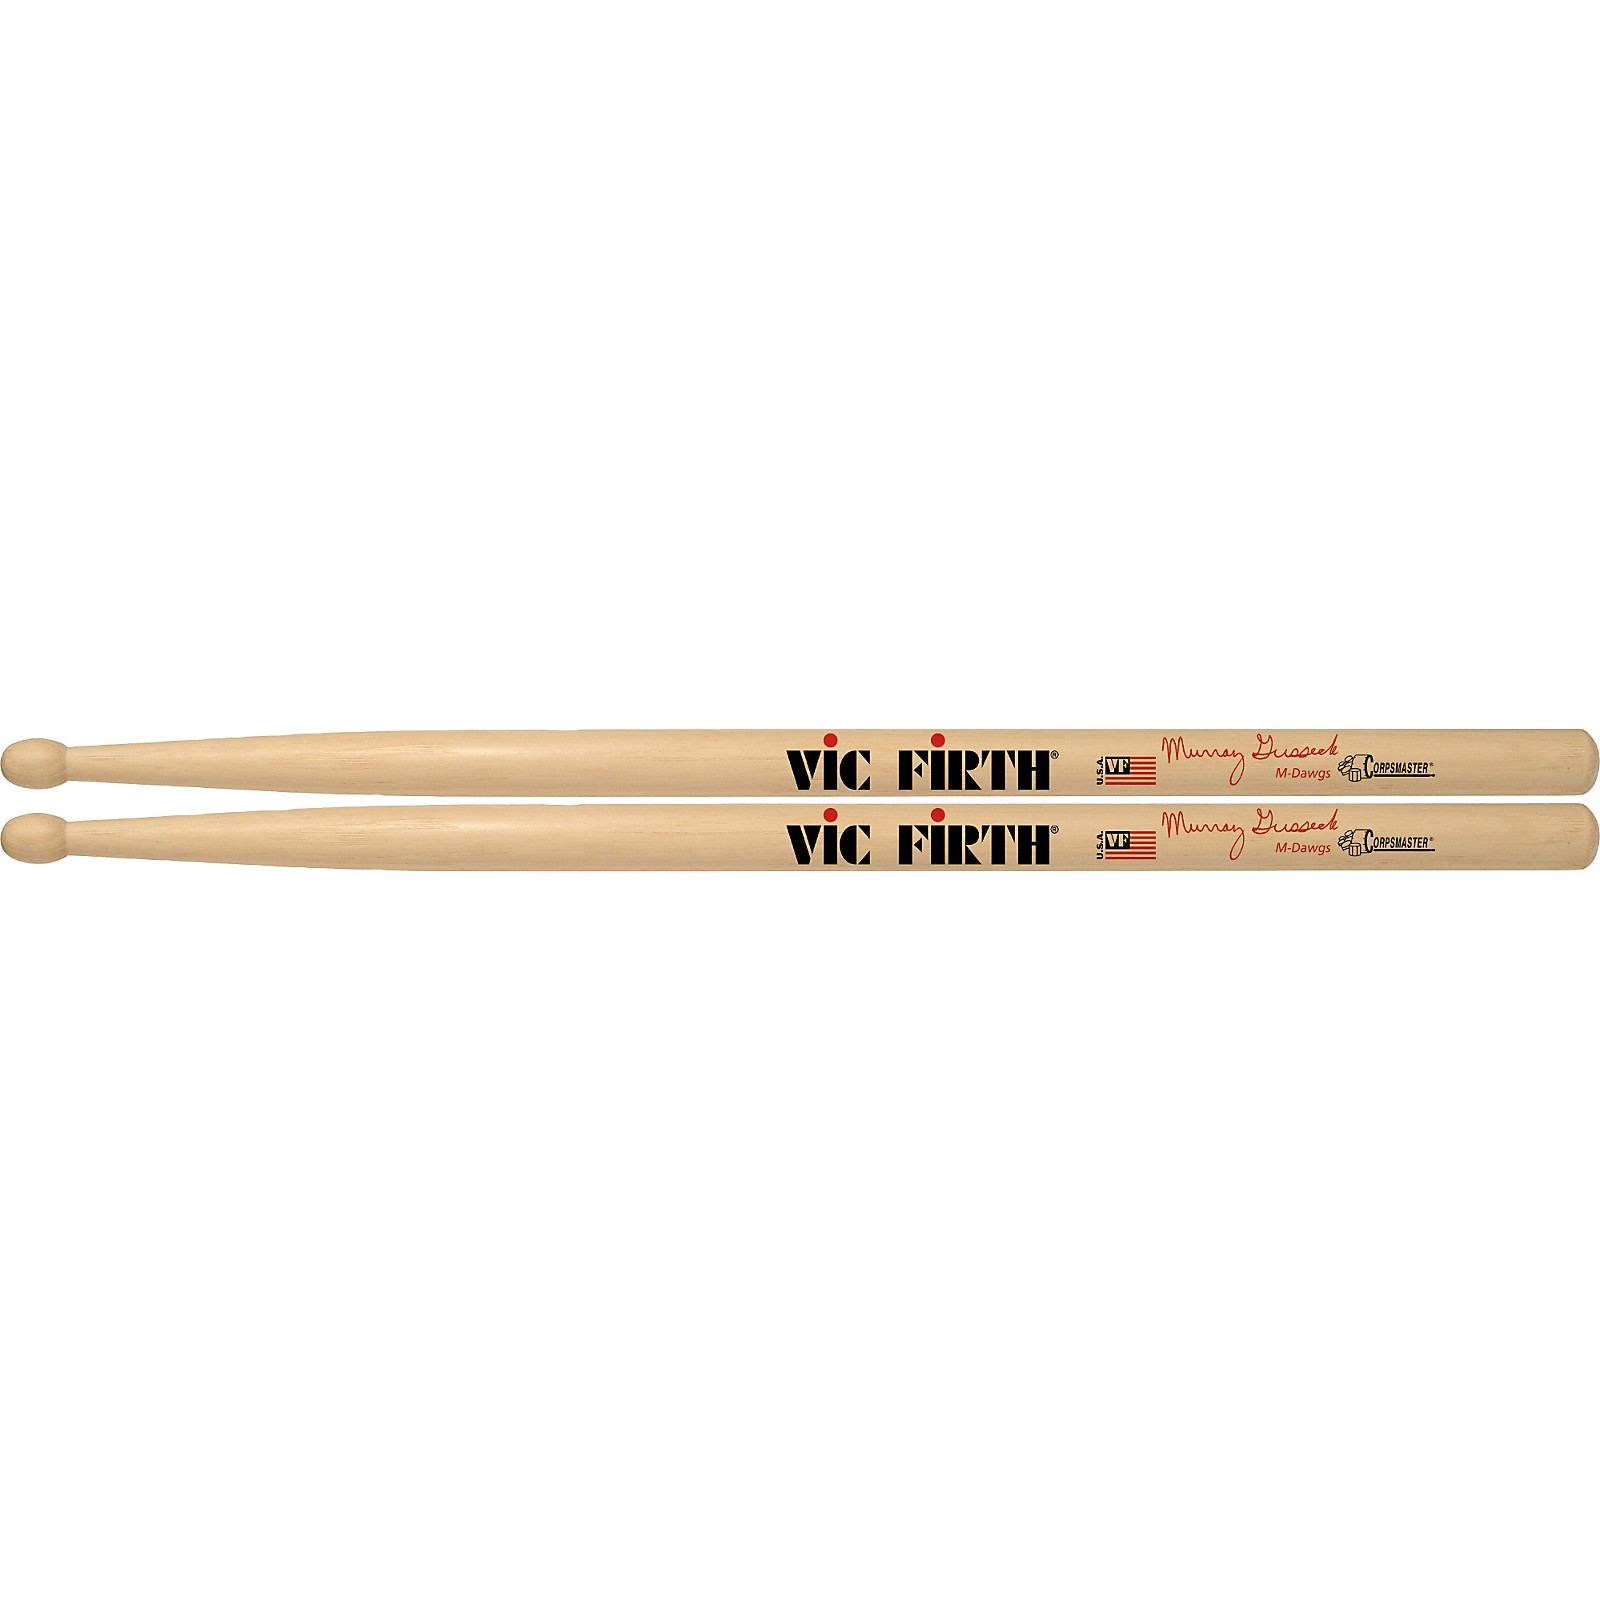 Vic Firth Corpsmaster Murray Gussek Signature Snare Drum Sticks